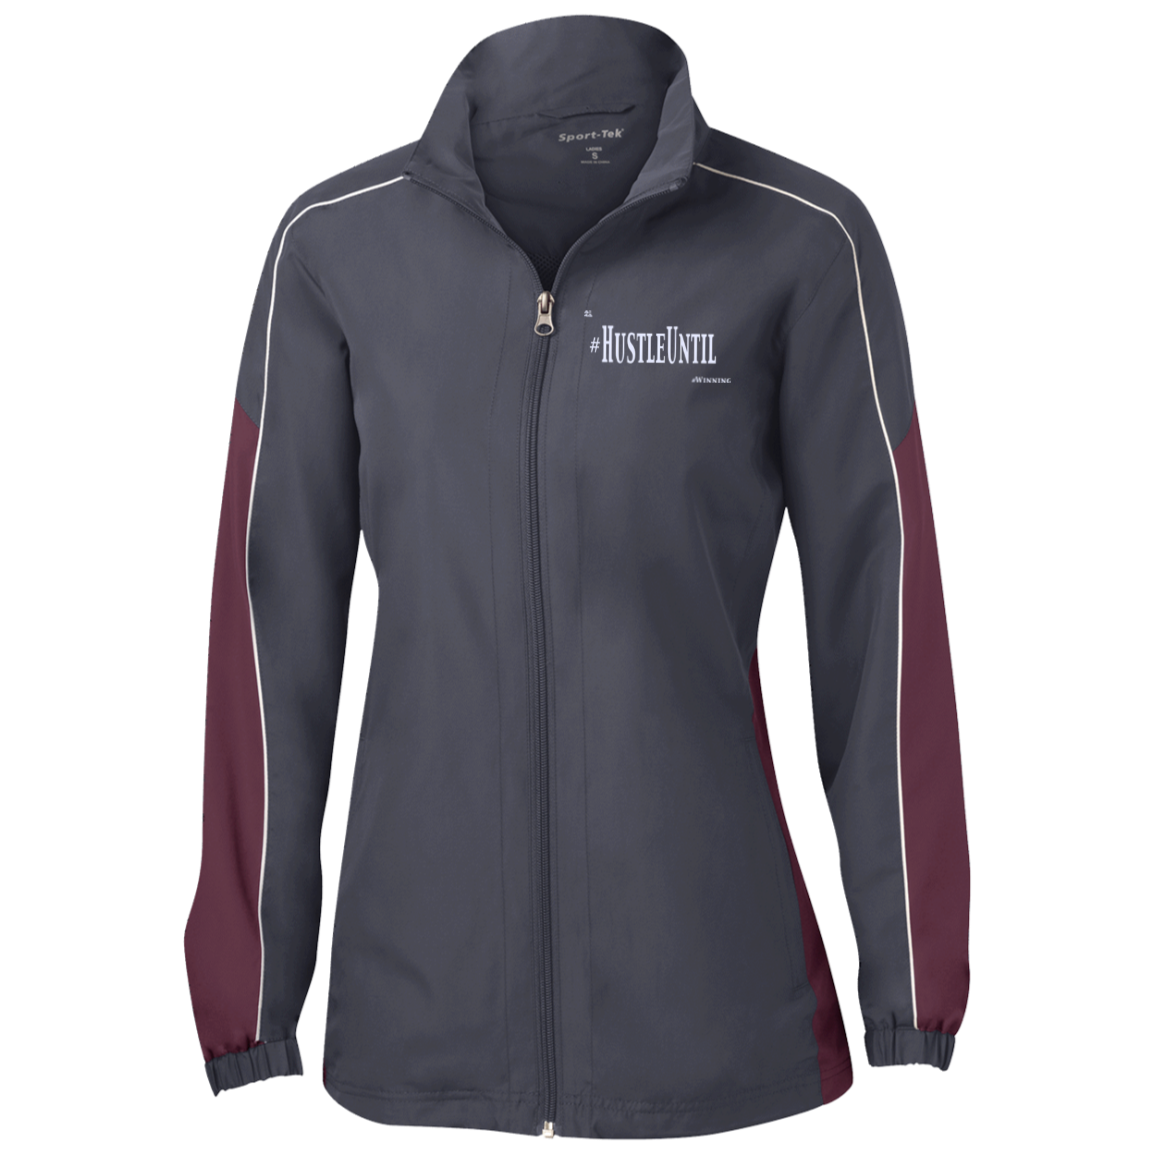 Hustle Until - Sport-Tek Ladies' Piped Colorblock Windbreaker